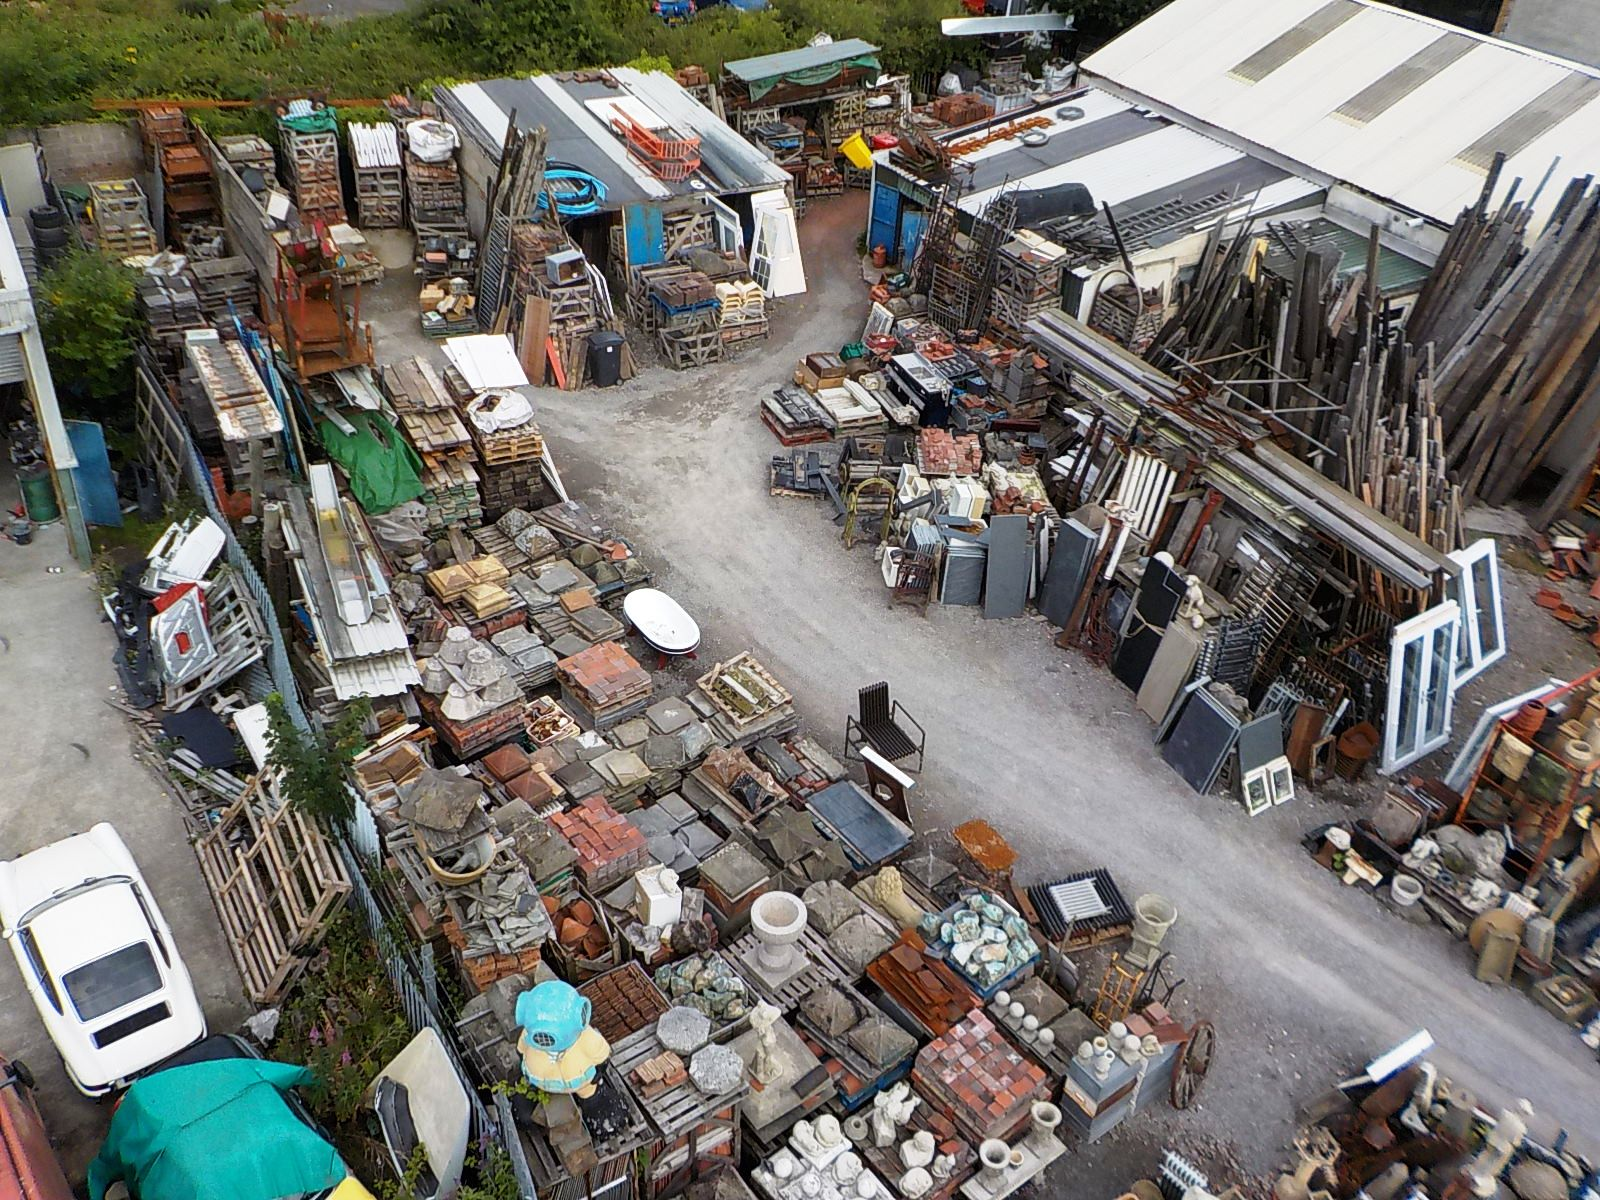 The yard is located on the outskirts of Bridgend near the coast in South Wales. & Theodore Sons u0026 Daughters